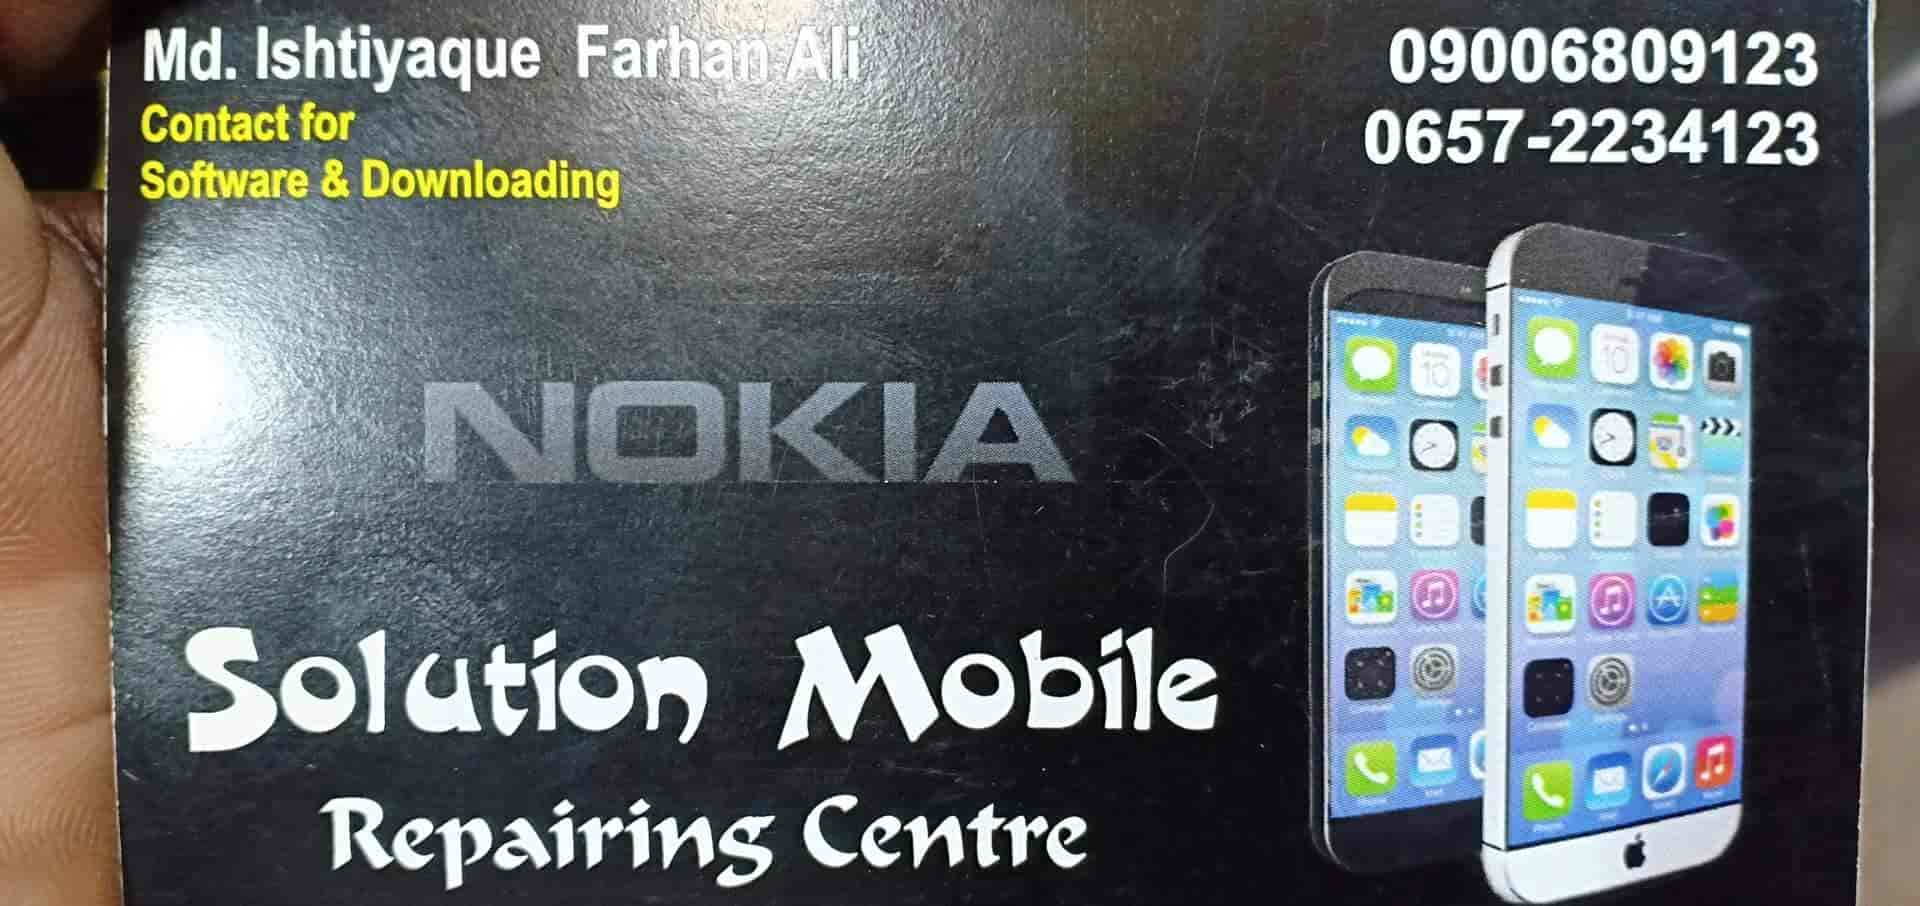 Solution Mobile Repairing Center, Sakchi - Mobile Phone